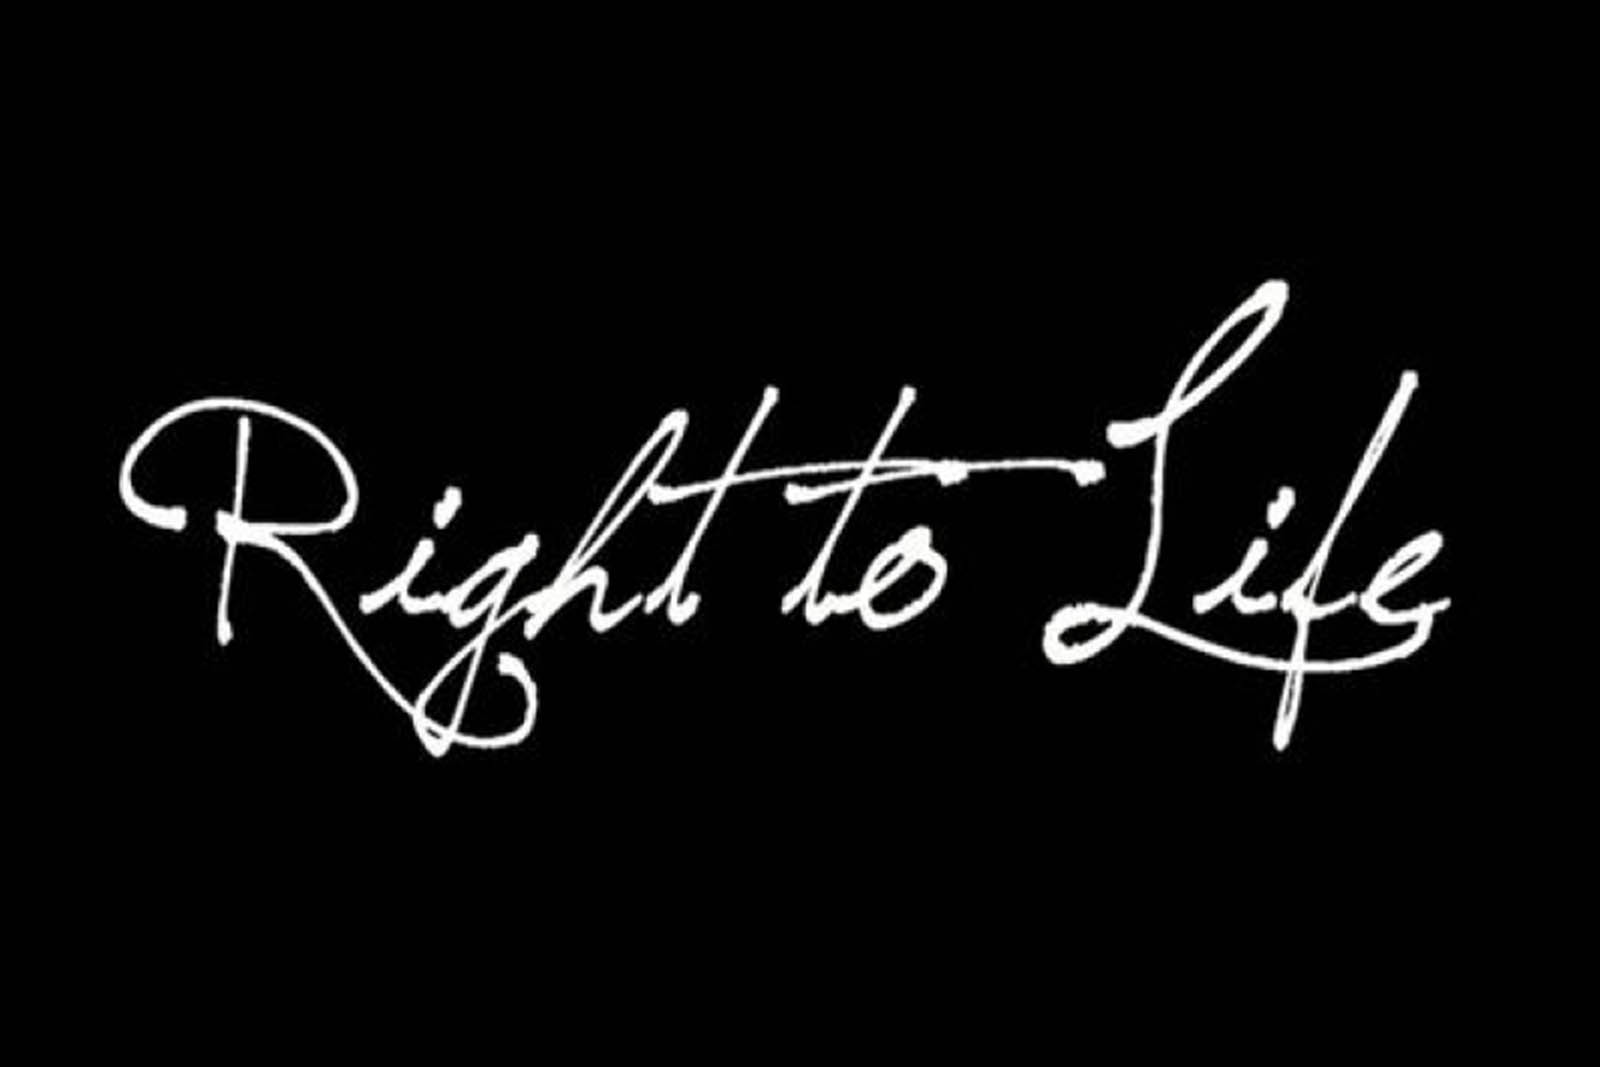 LIMITATIONS ON THE RIGHT TO LIFE